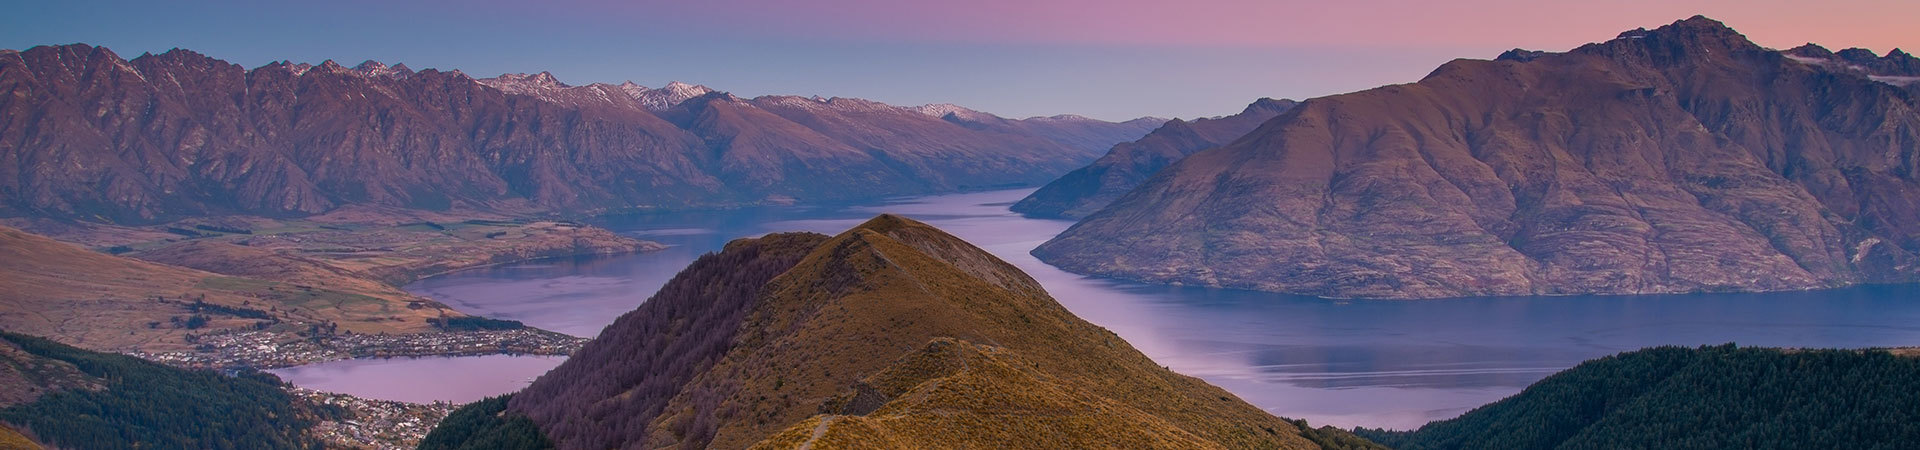 Queenstown, South Island